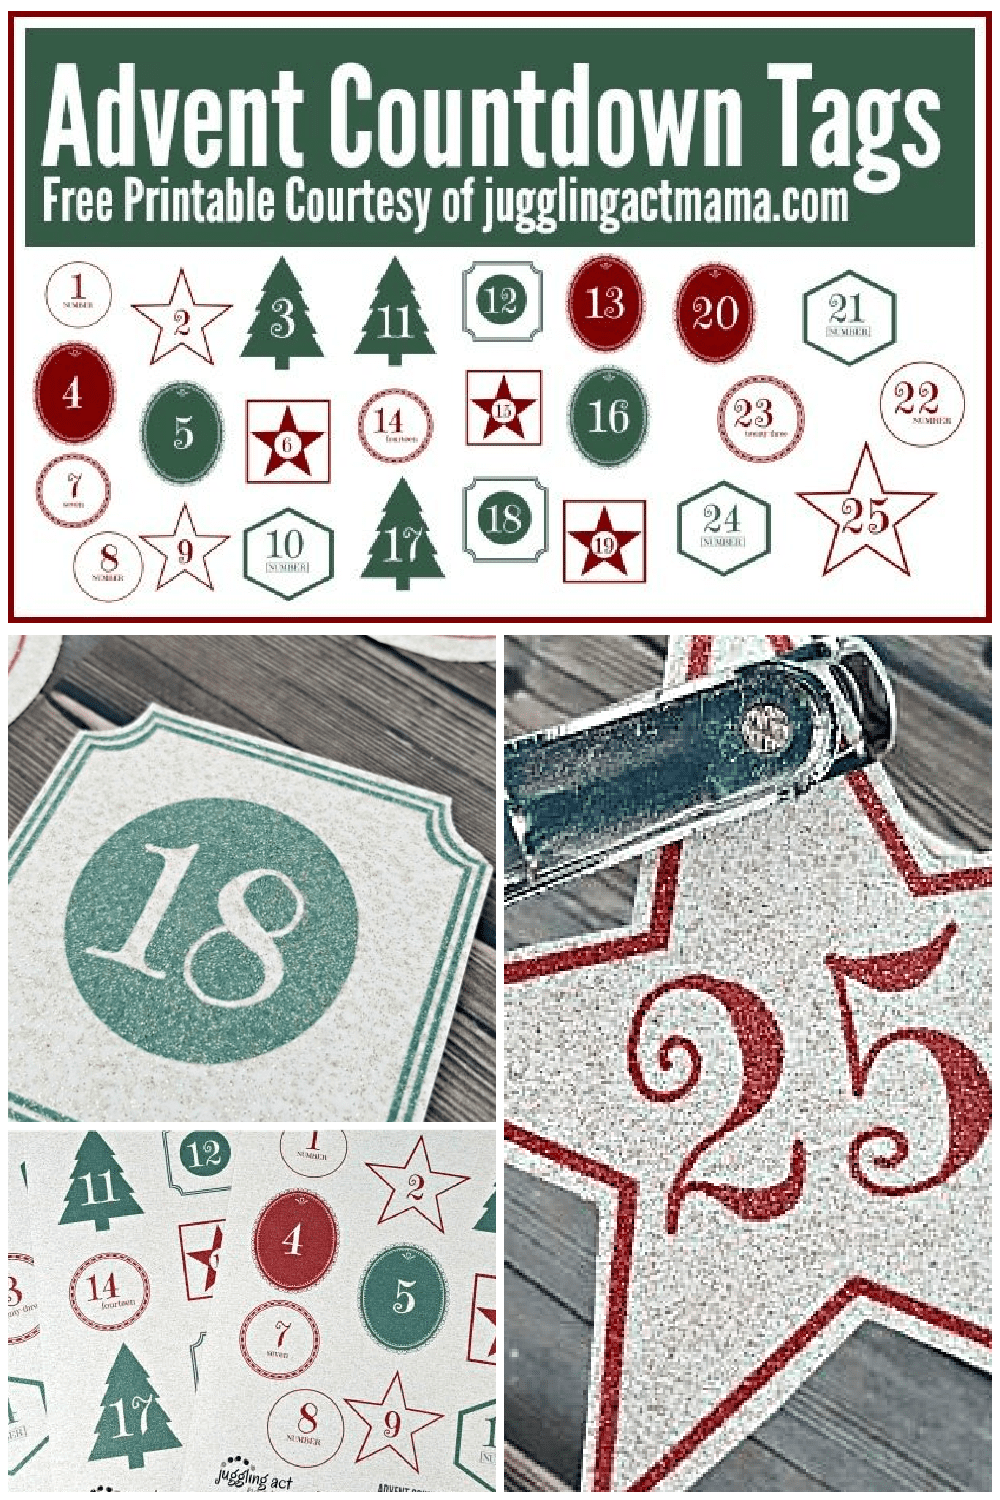 These gorgeous Printable Advent Calendar Numbers using glittery paper add a touch of holiday whimsy! Download them for free and get our tips on how to use this paper. via @jugglingactmama